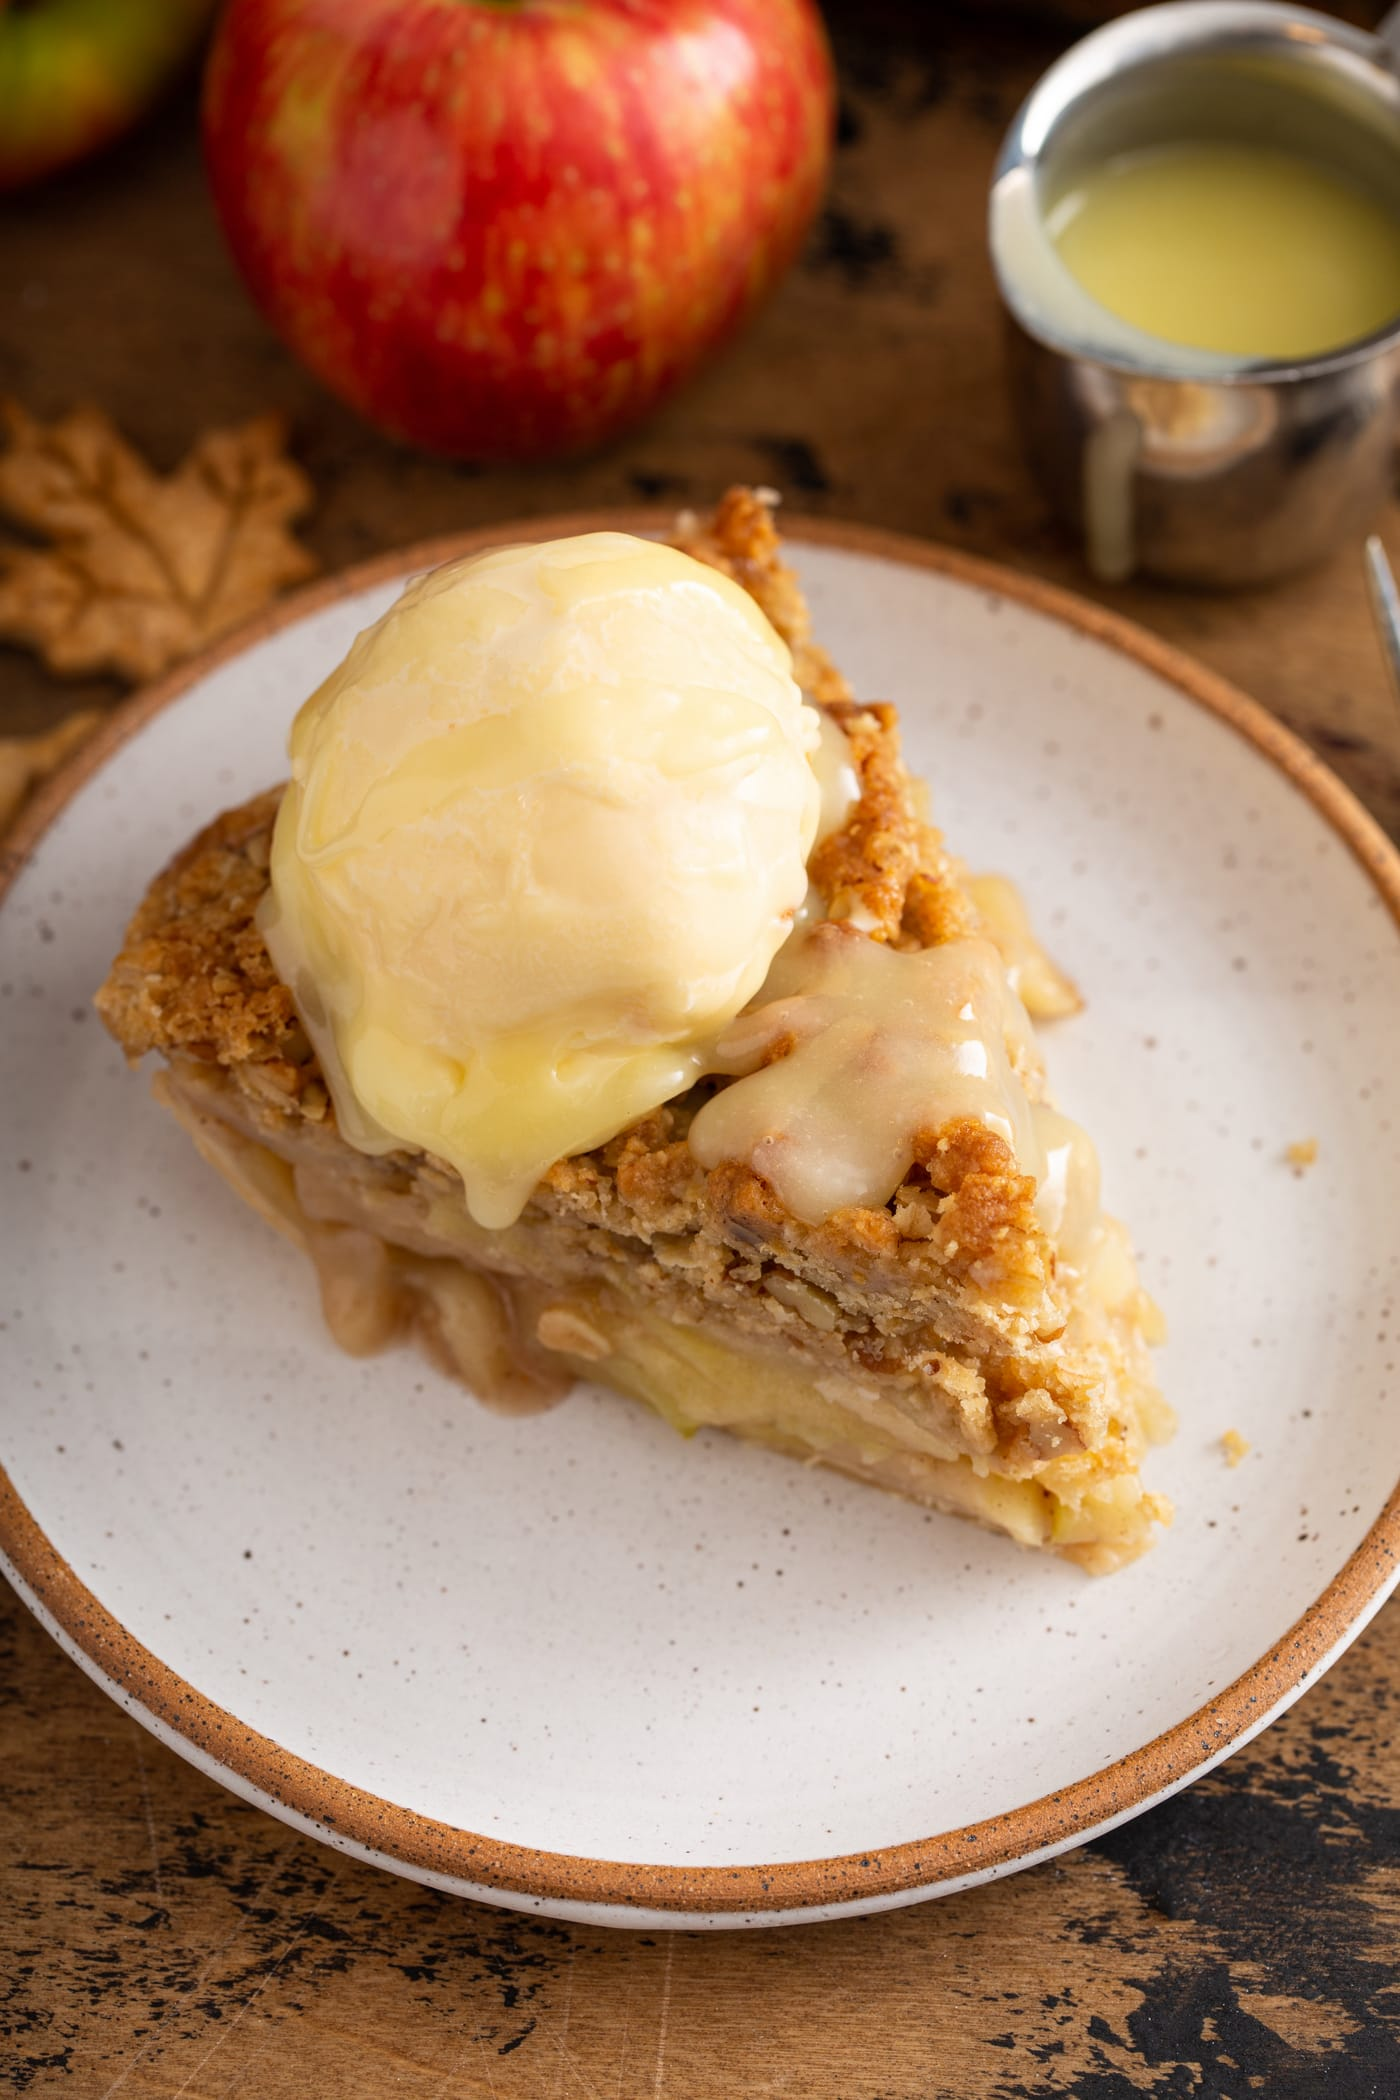 A slice of Dutch apple pie with a scoop of ice cream on top. White chocolate butter sauce has been poured over the top of the ice cream.